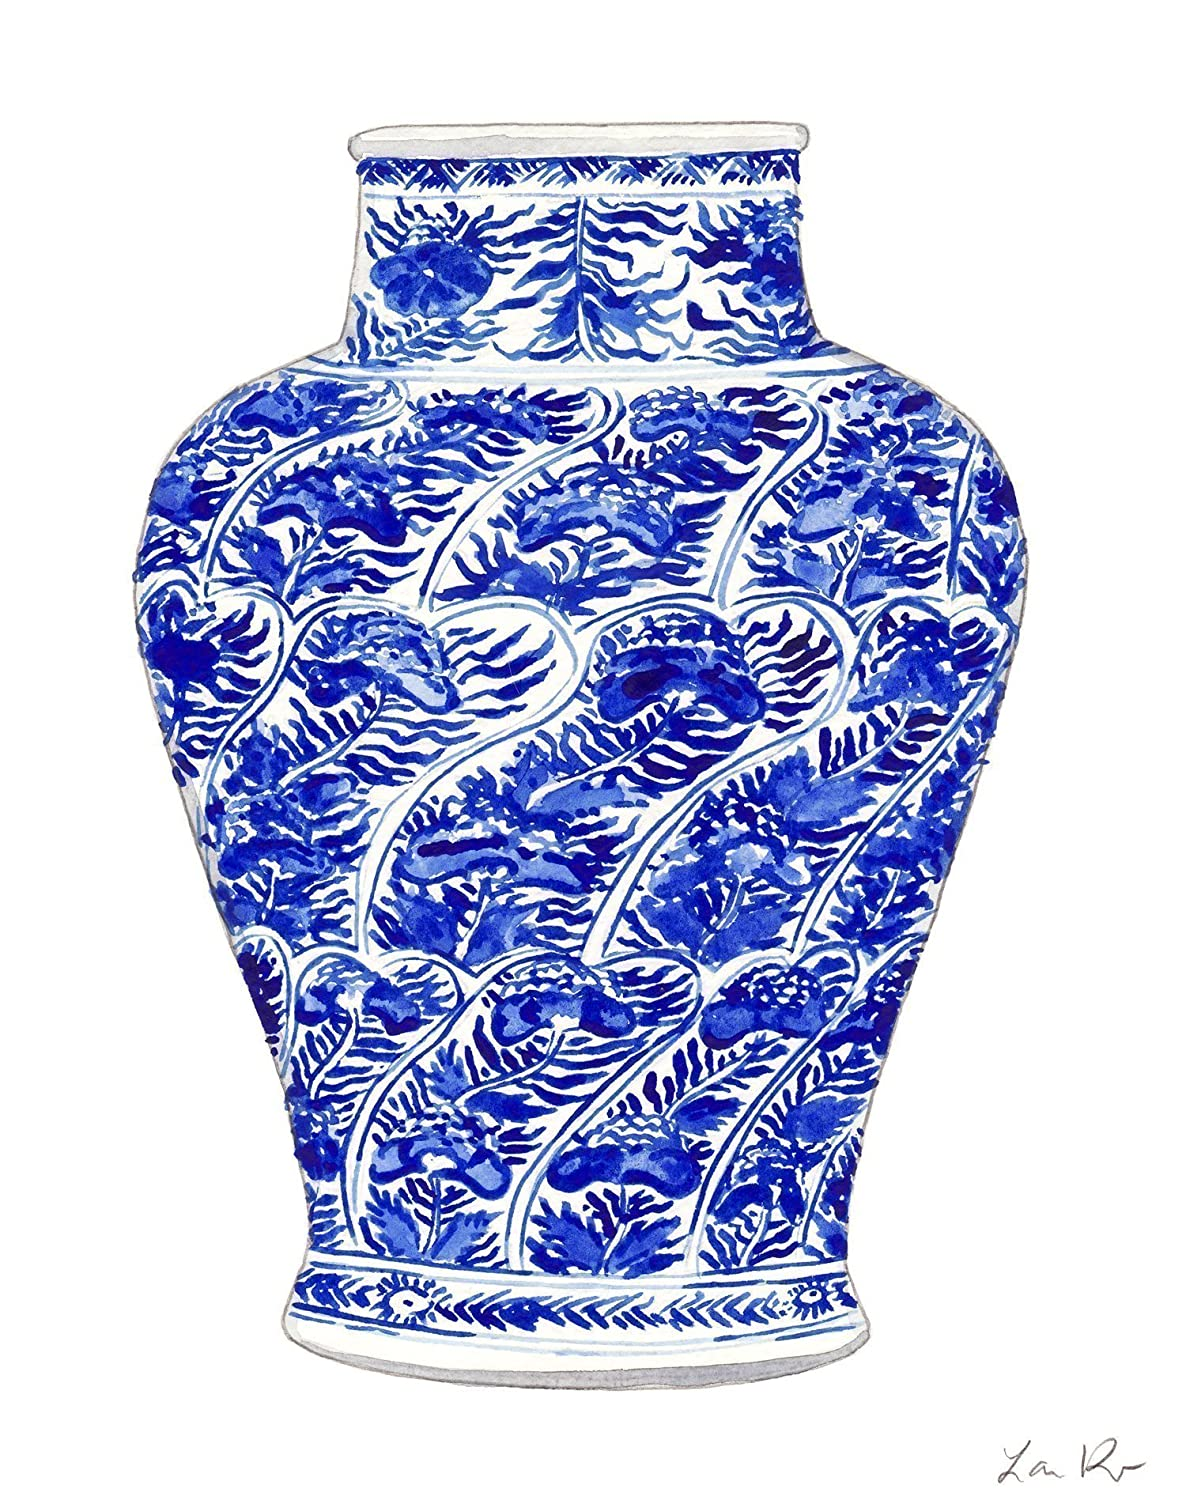 0af92575042 Amazon.com  Blue and White China Vase Art 5 Blue and White Chinoiserie Art  Chinoiserie Painting Chinese Wall Decor Chinese Art Print Asian Wall Decor  ...